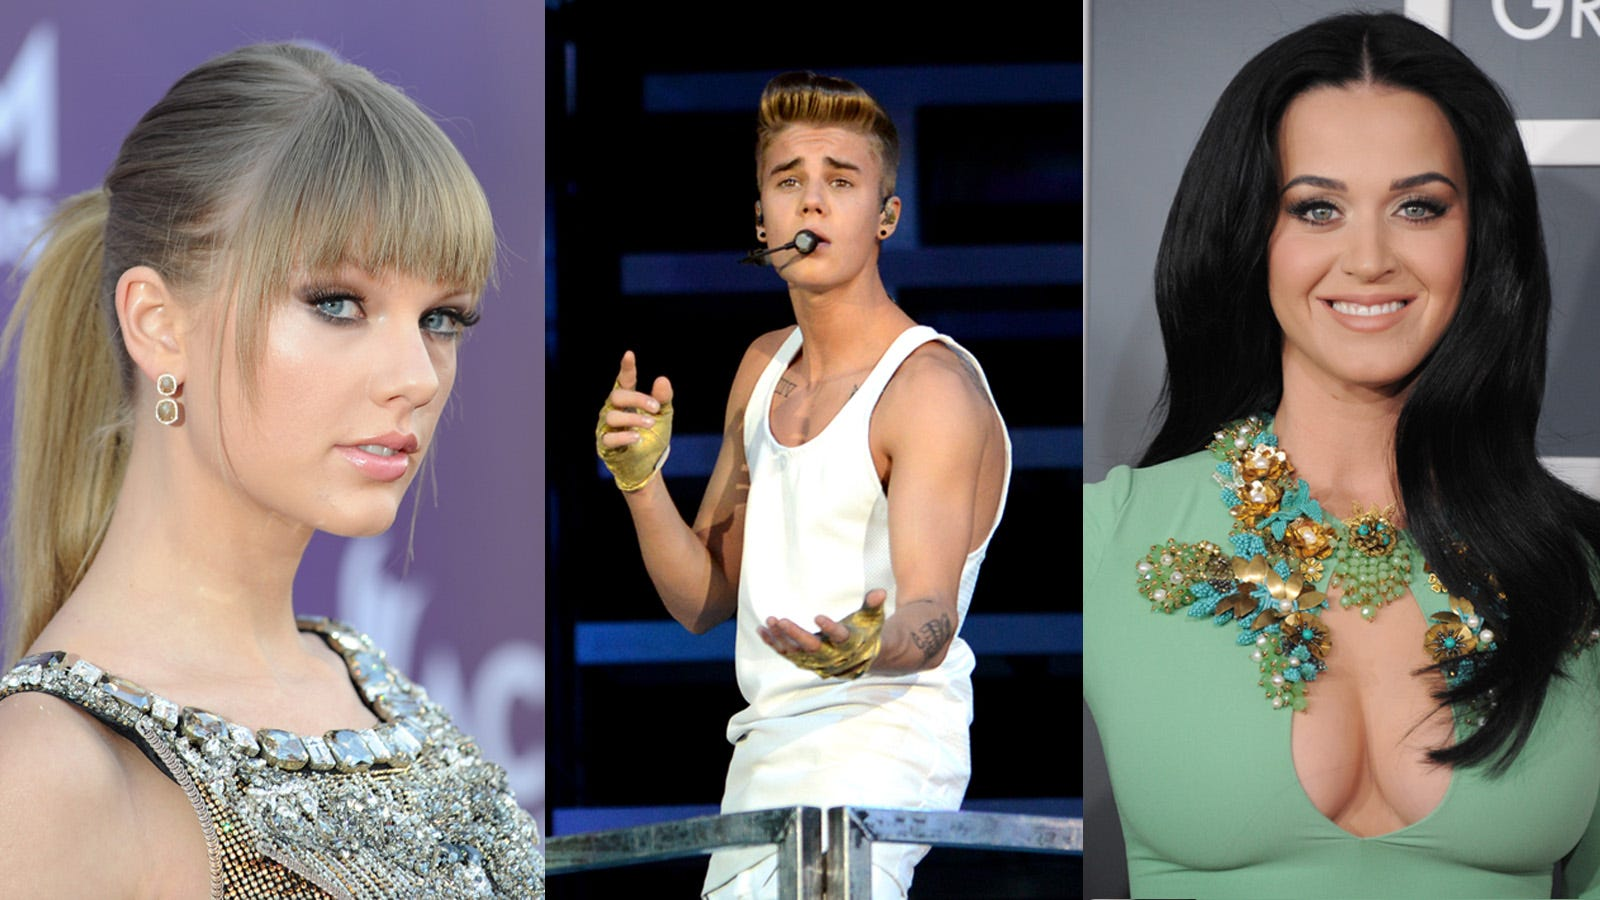 Top 10 Celebrities with the Most Twitter Followers